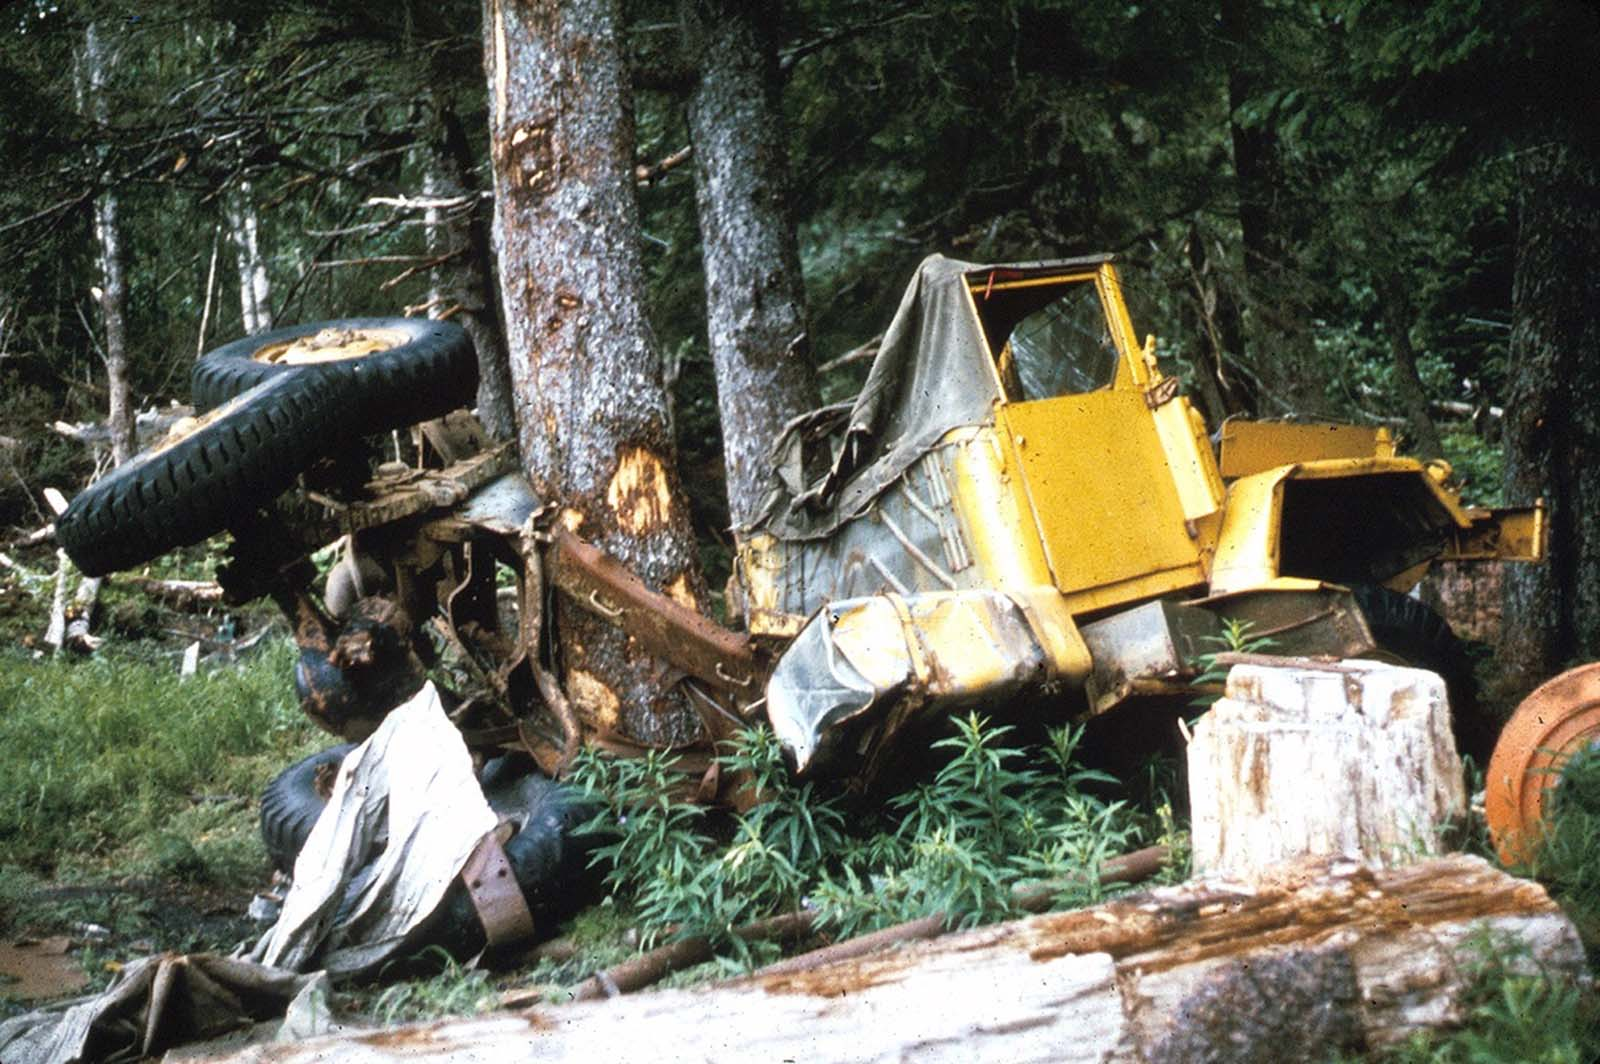 This truck was bent around a tree by the surge waves generated by the underwater landslides along the Seward waterfront. The truck was about 32 feet above water level at the time of the earthquake.